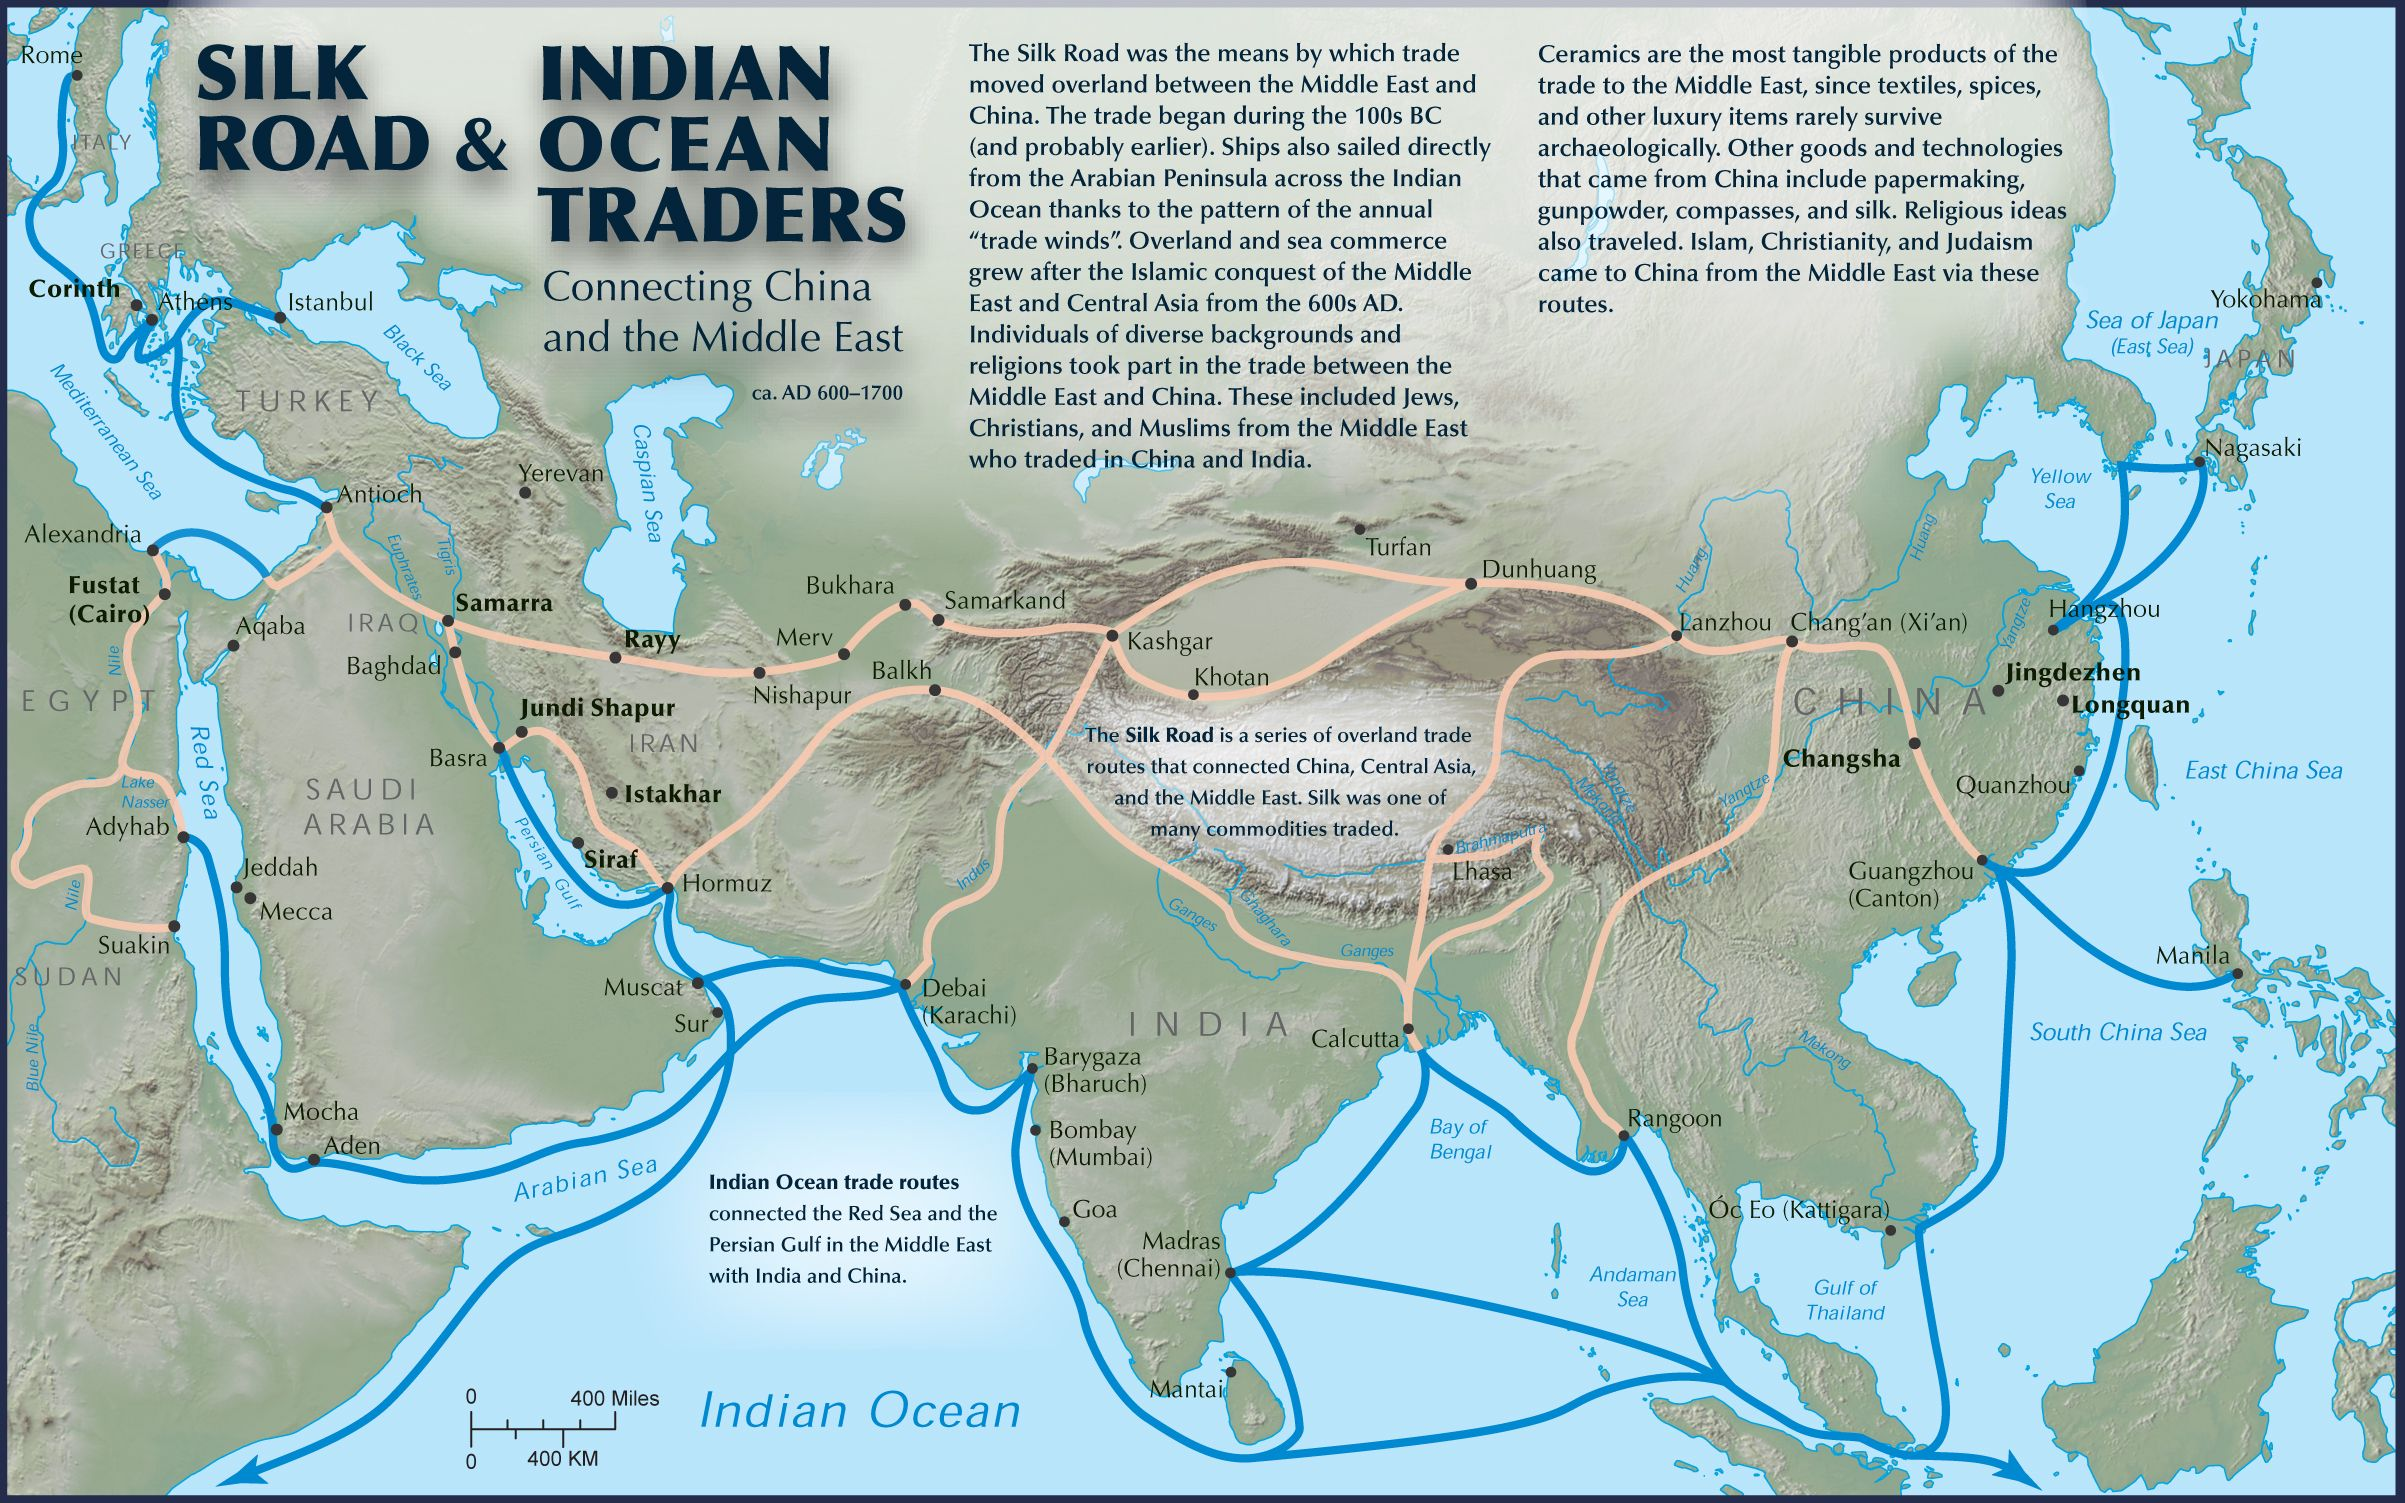 Silk Road And Indian Ocean Traders Connecting China And